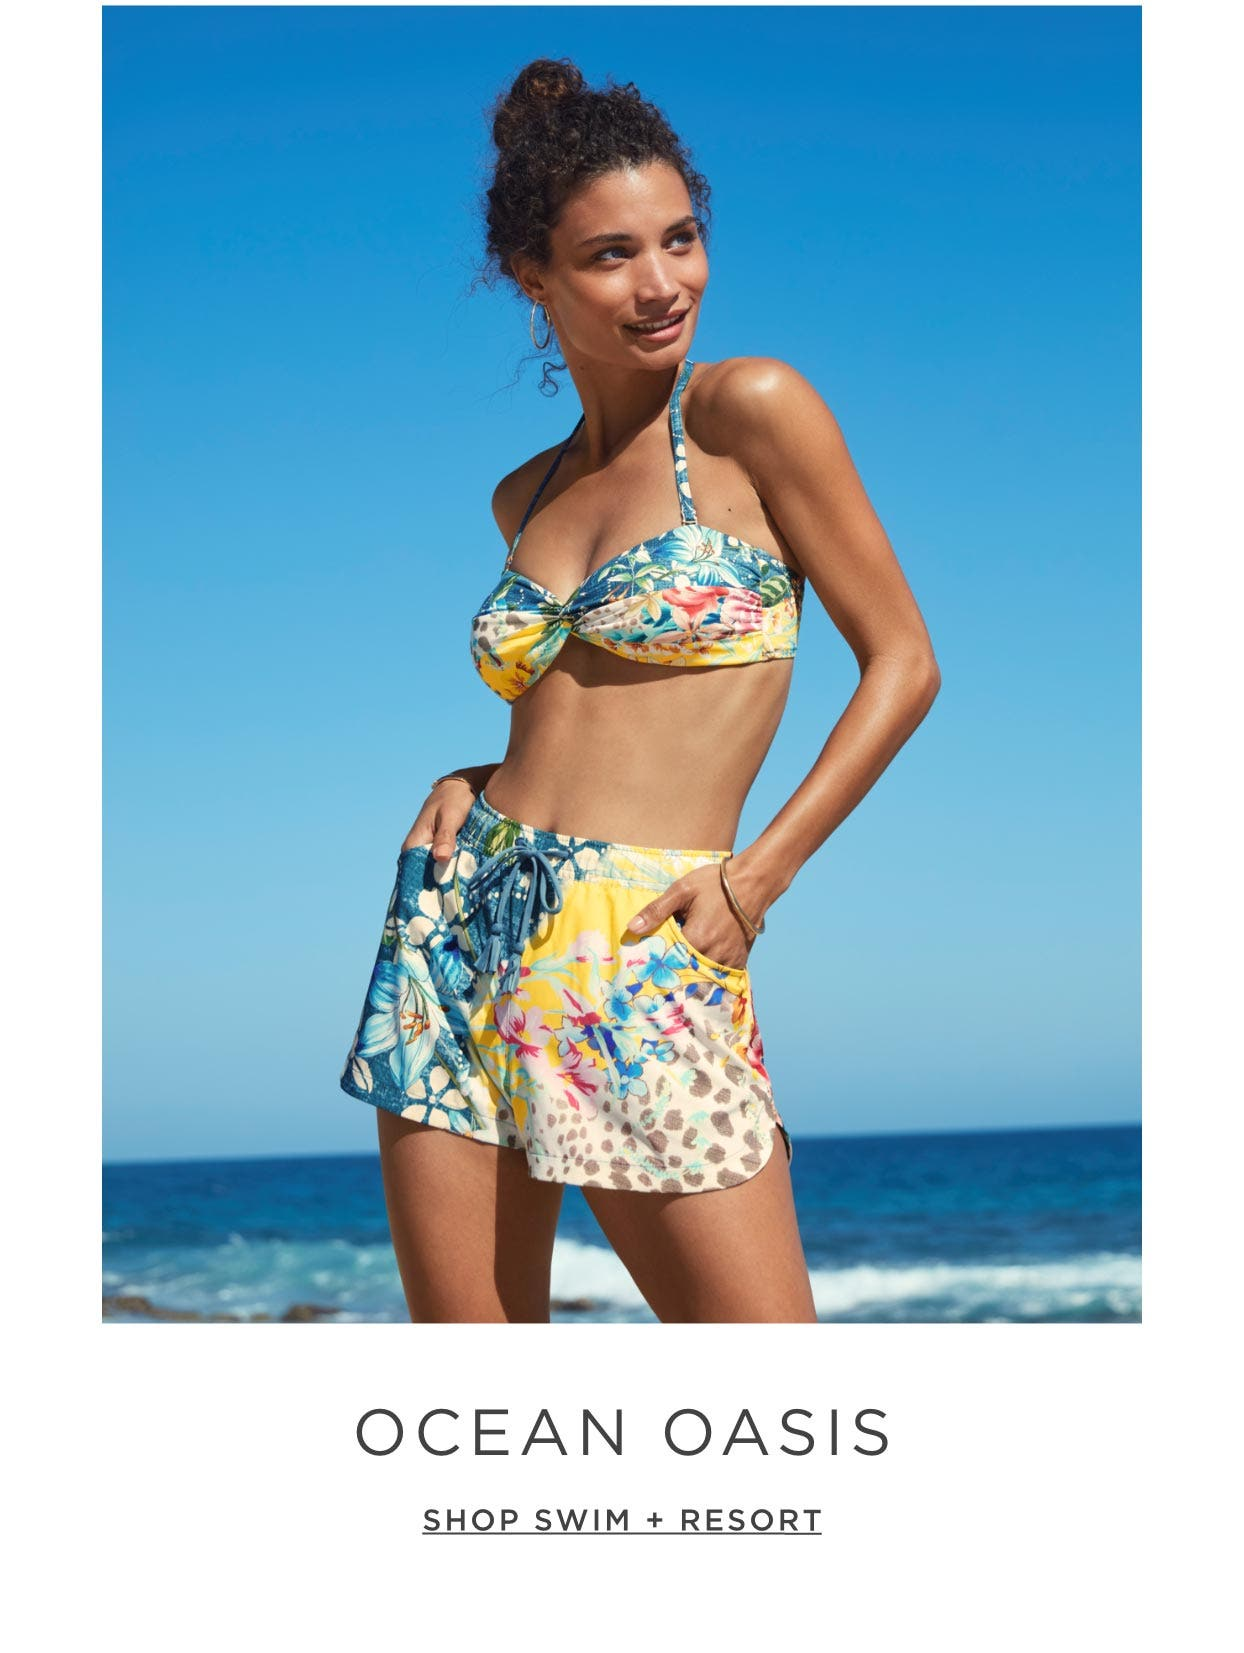 Ocean Oasis – We float freely in this little piece of paradise as we wander the sandy shores. Shop Swim + Resort